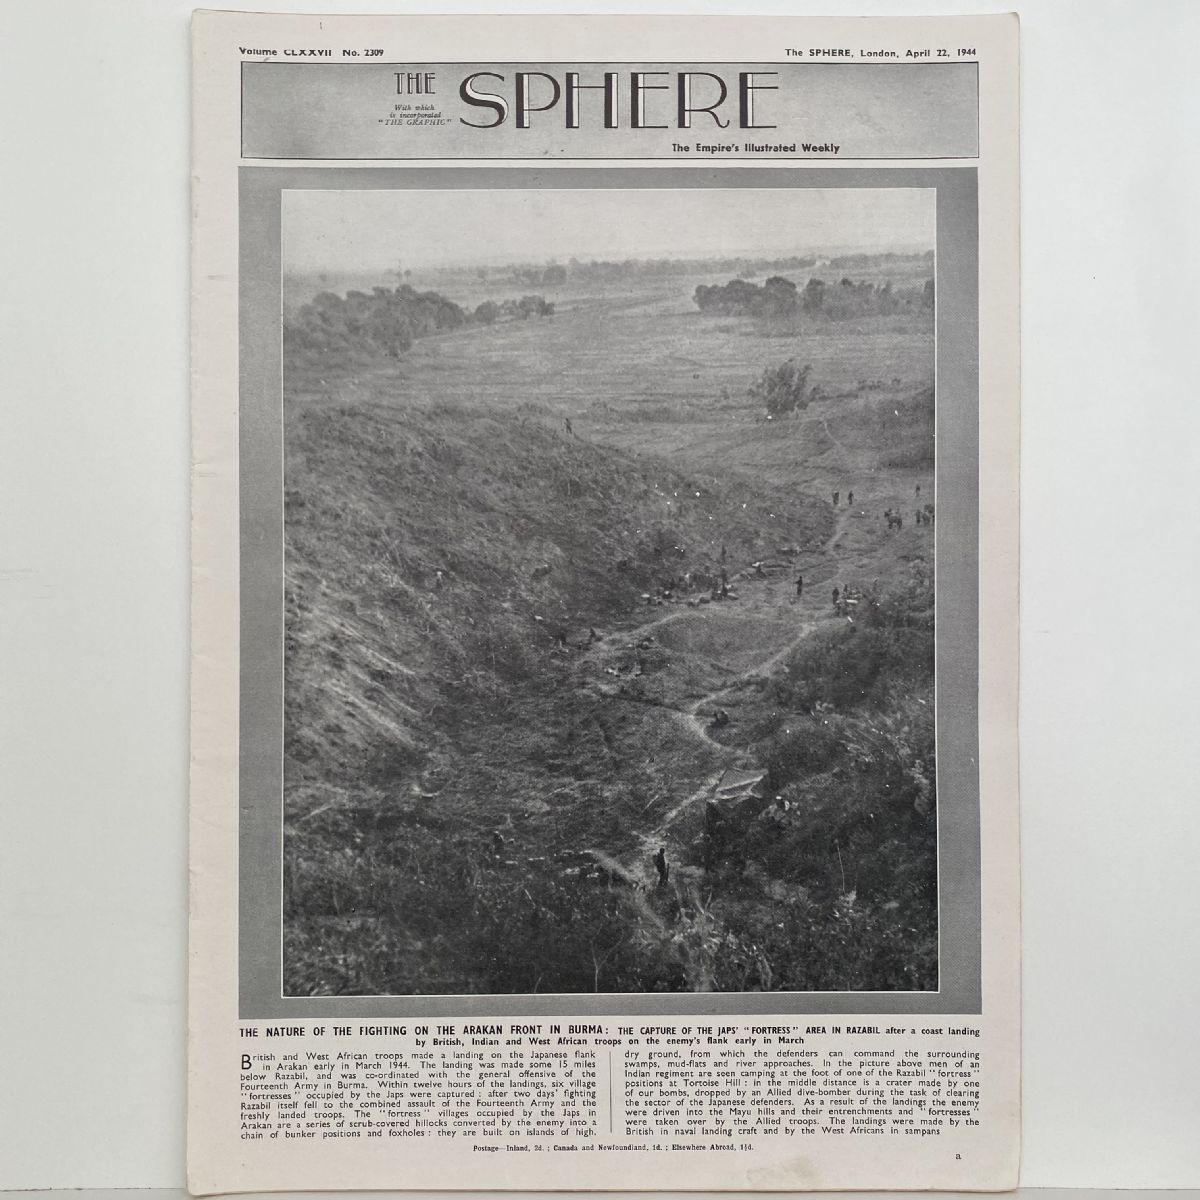 THE SPHERE The Empire's Illustrated Weekly. April 23,1944. No.2309